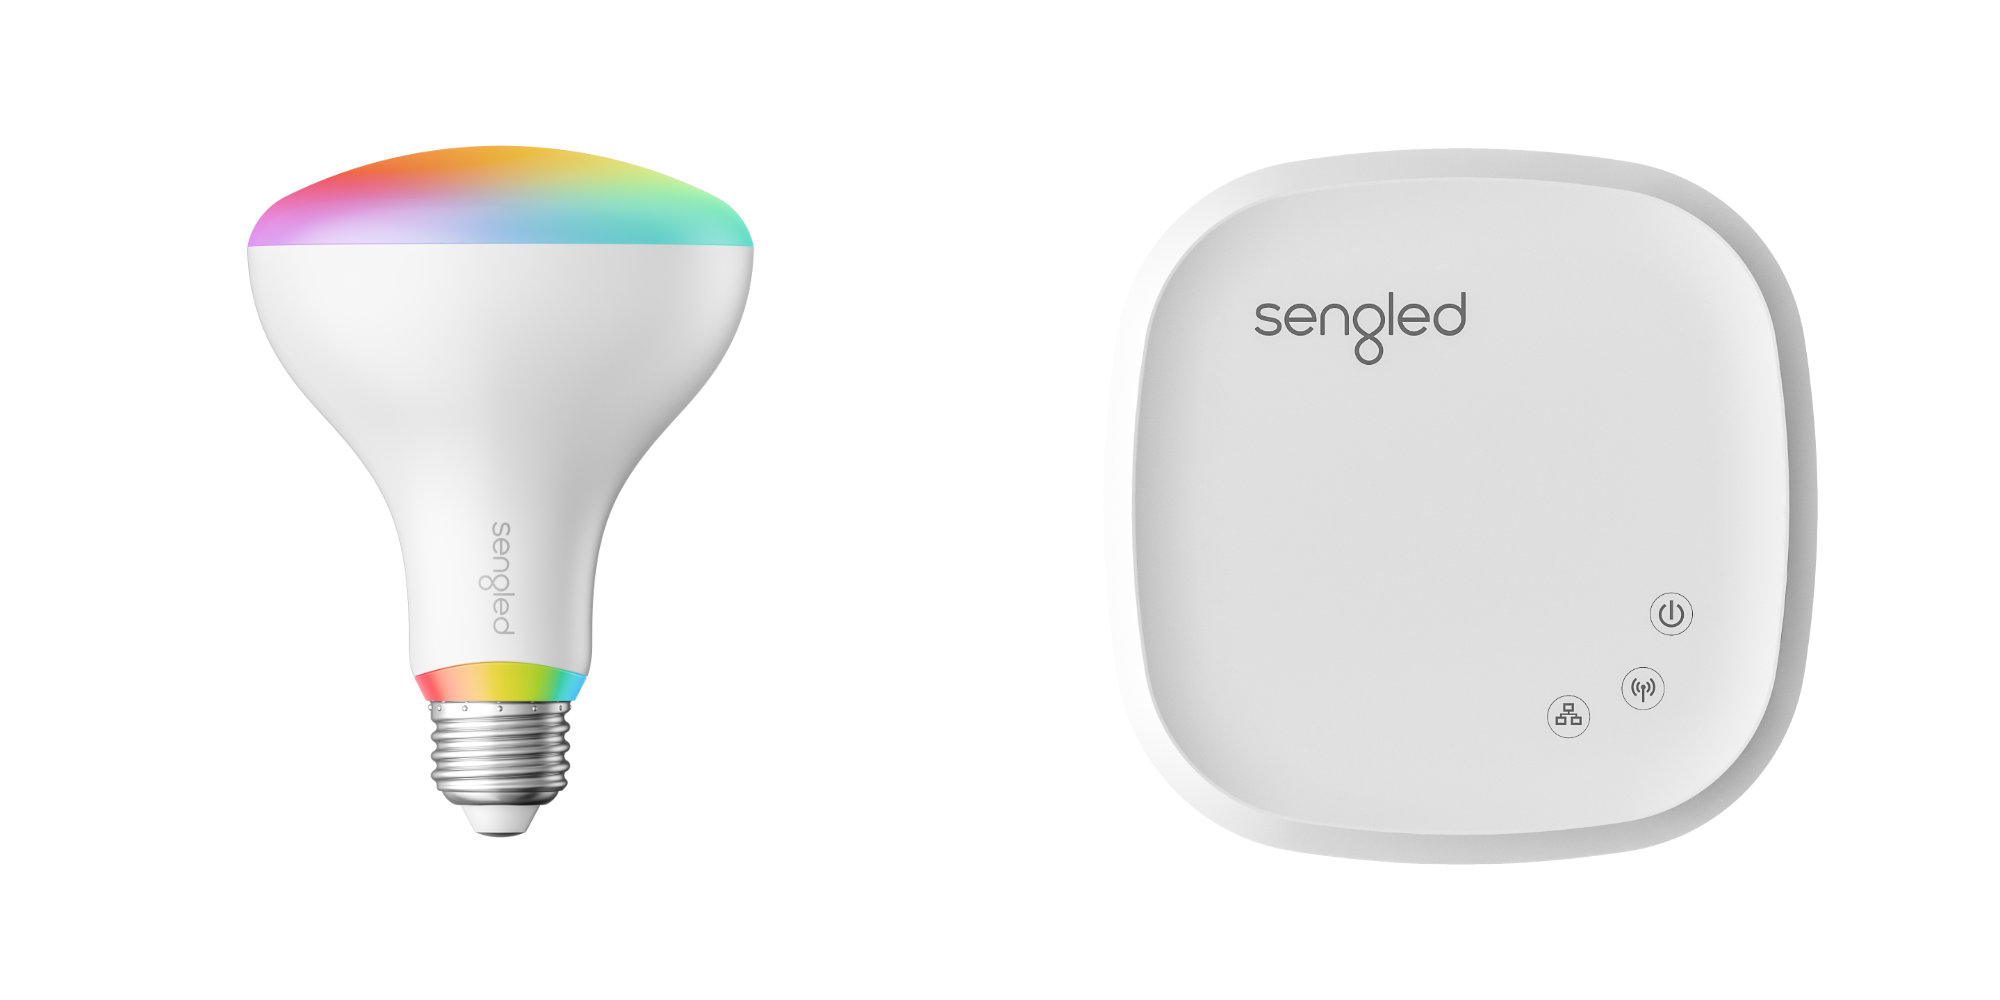 affordable smart lighting